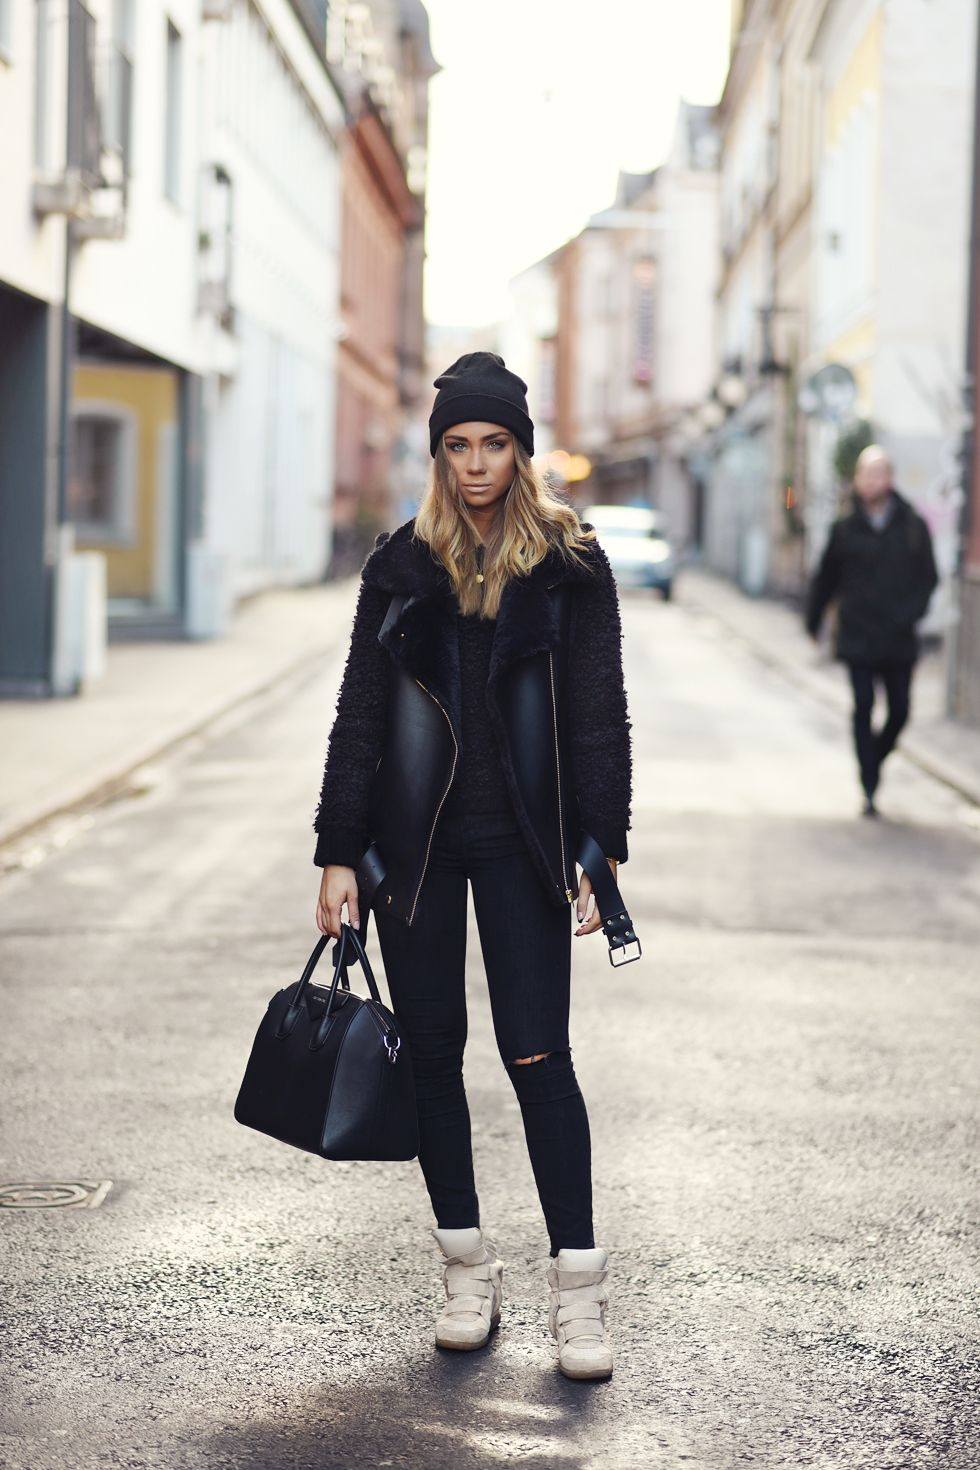 Lisa Olsson - Sweater, LXL. Beanie, H&M. Necklace, Jane Kønig. Bag, Givenchy. Vest, LXL. Shoes, Isabel Marant. http://FashionCognoscente.blogspot.com